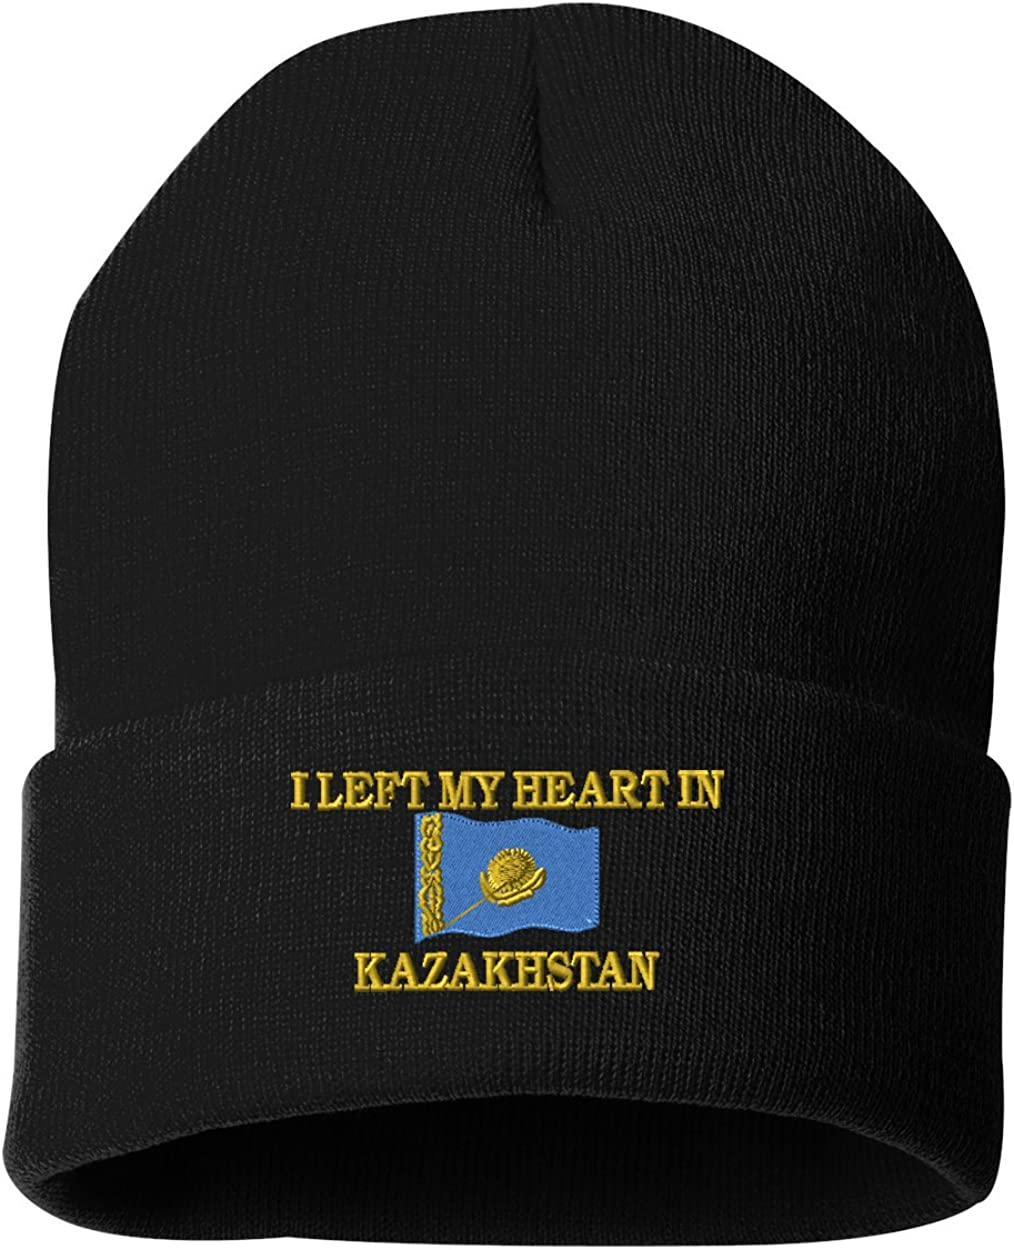 I LEFT MY HEART IN KAZAKHSTAN Custom Personalized Embroidery Embroidered Beanie